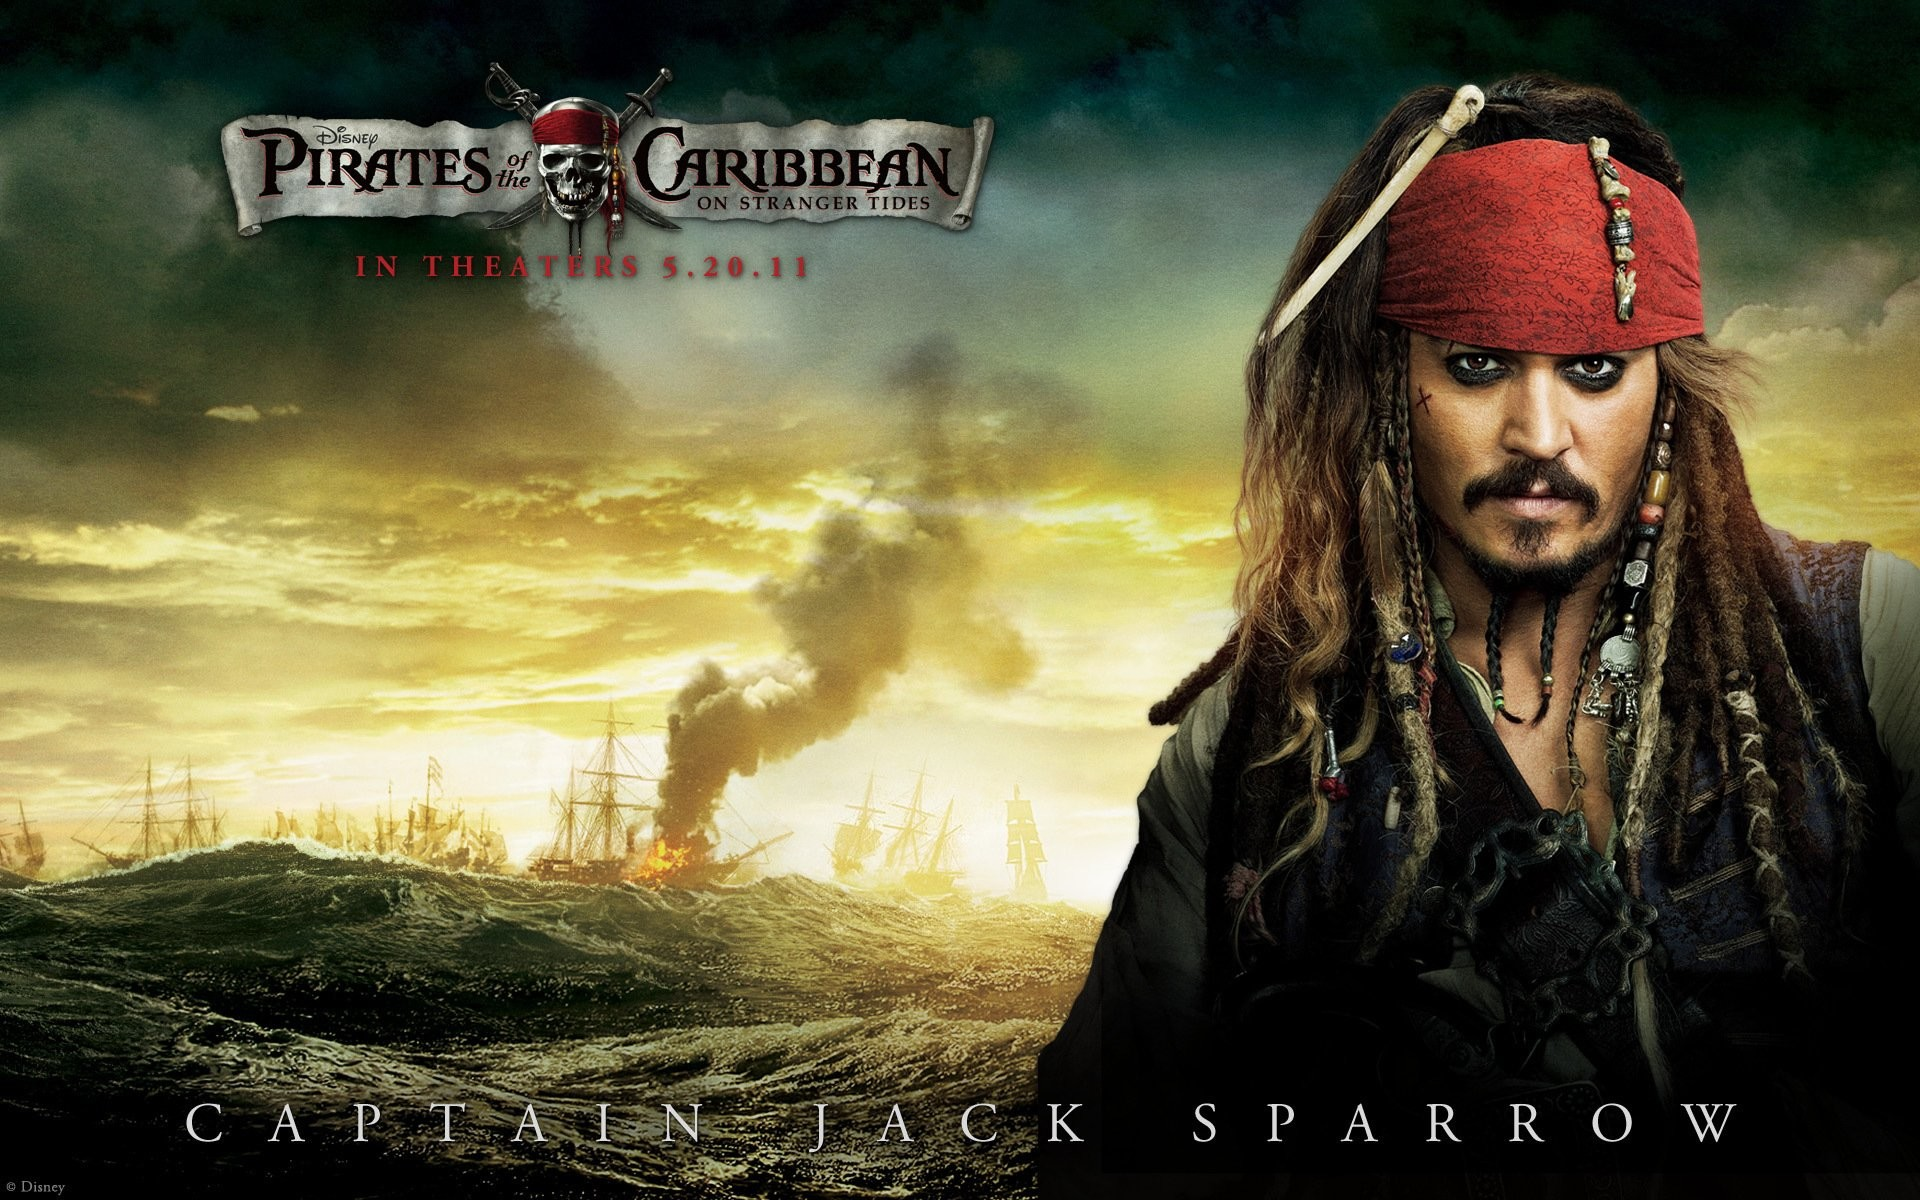 File:Pirates 4 poster version 8a.jpg